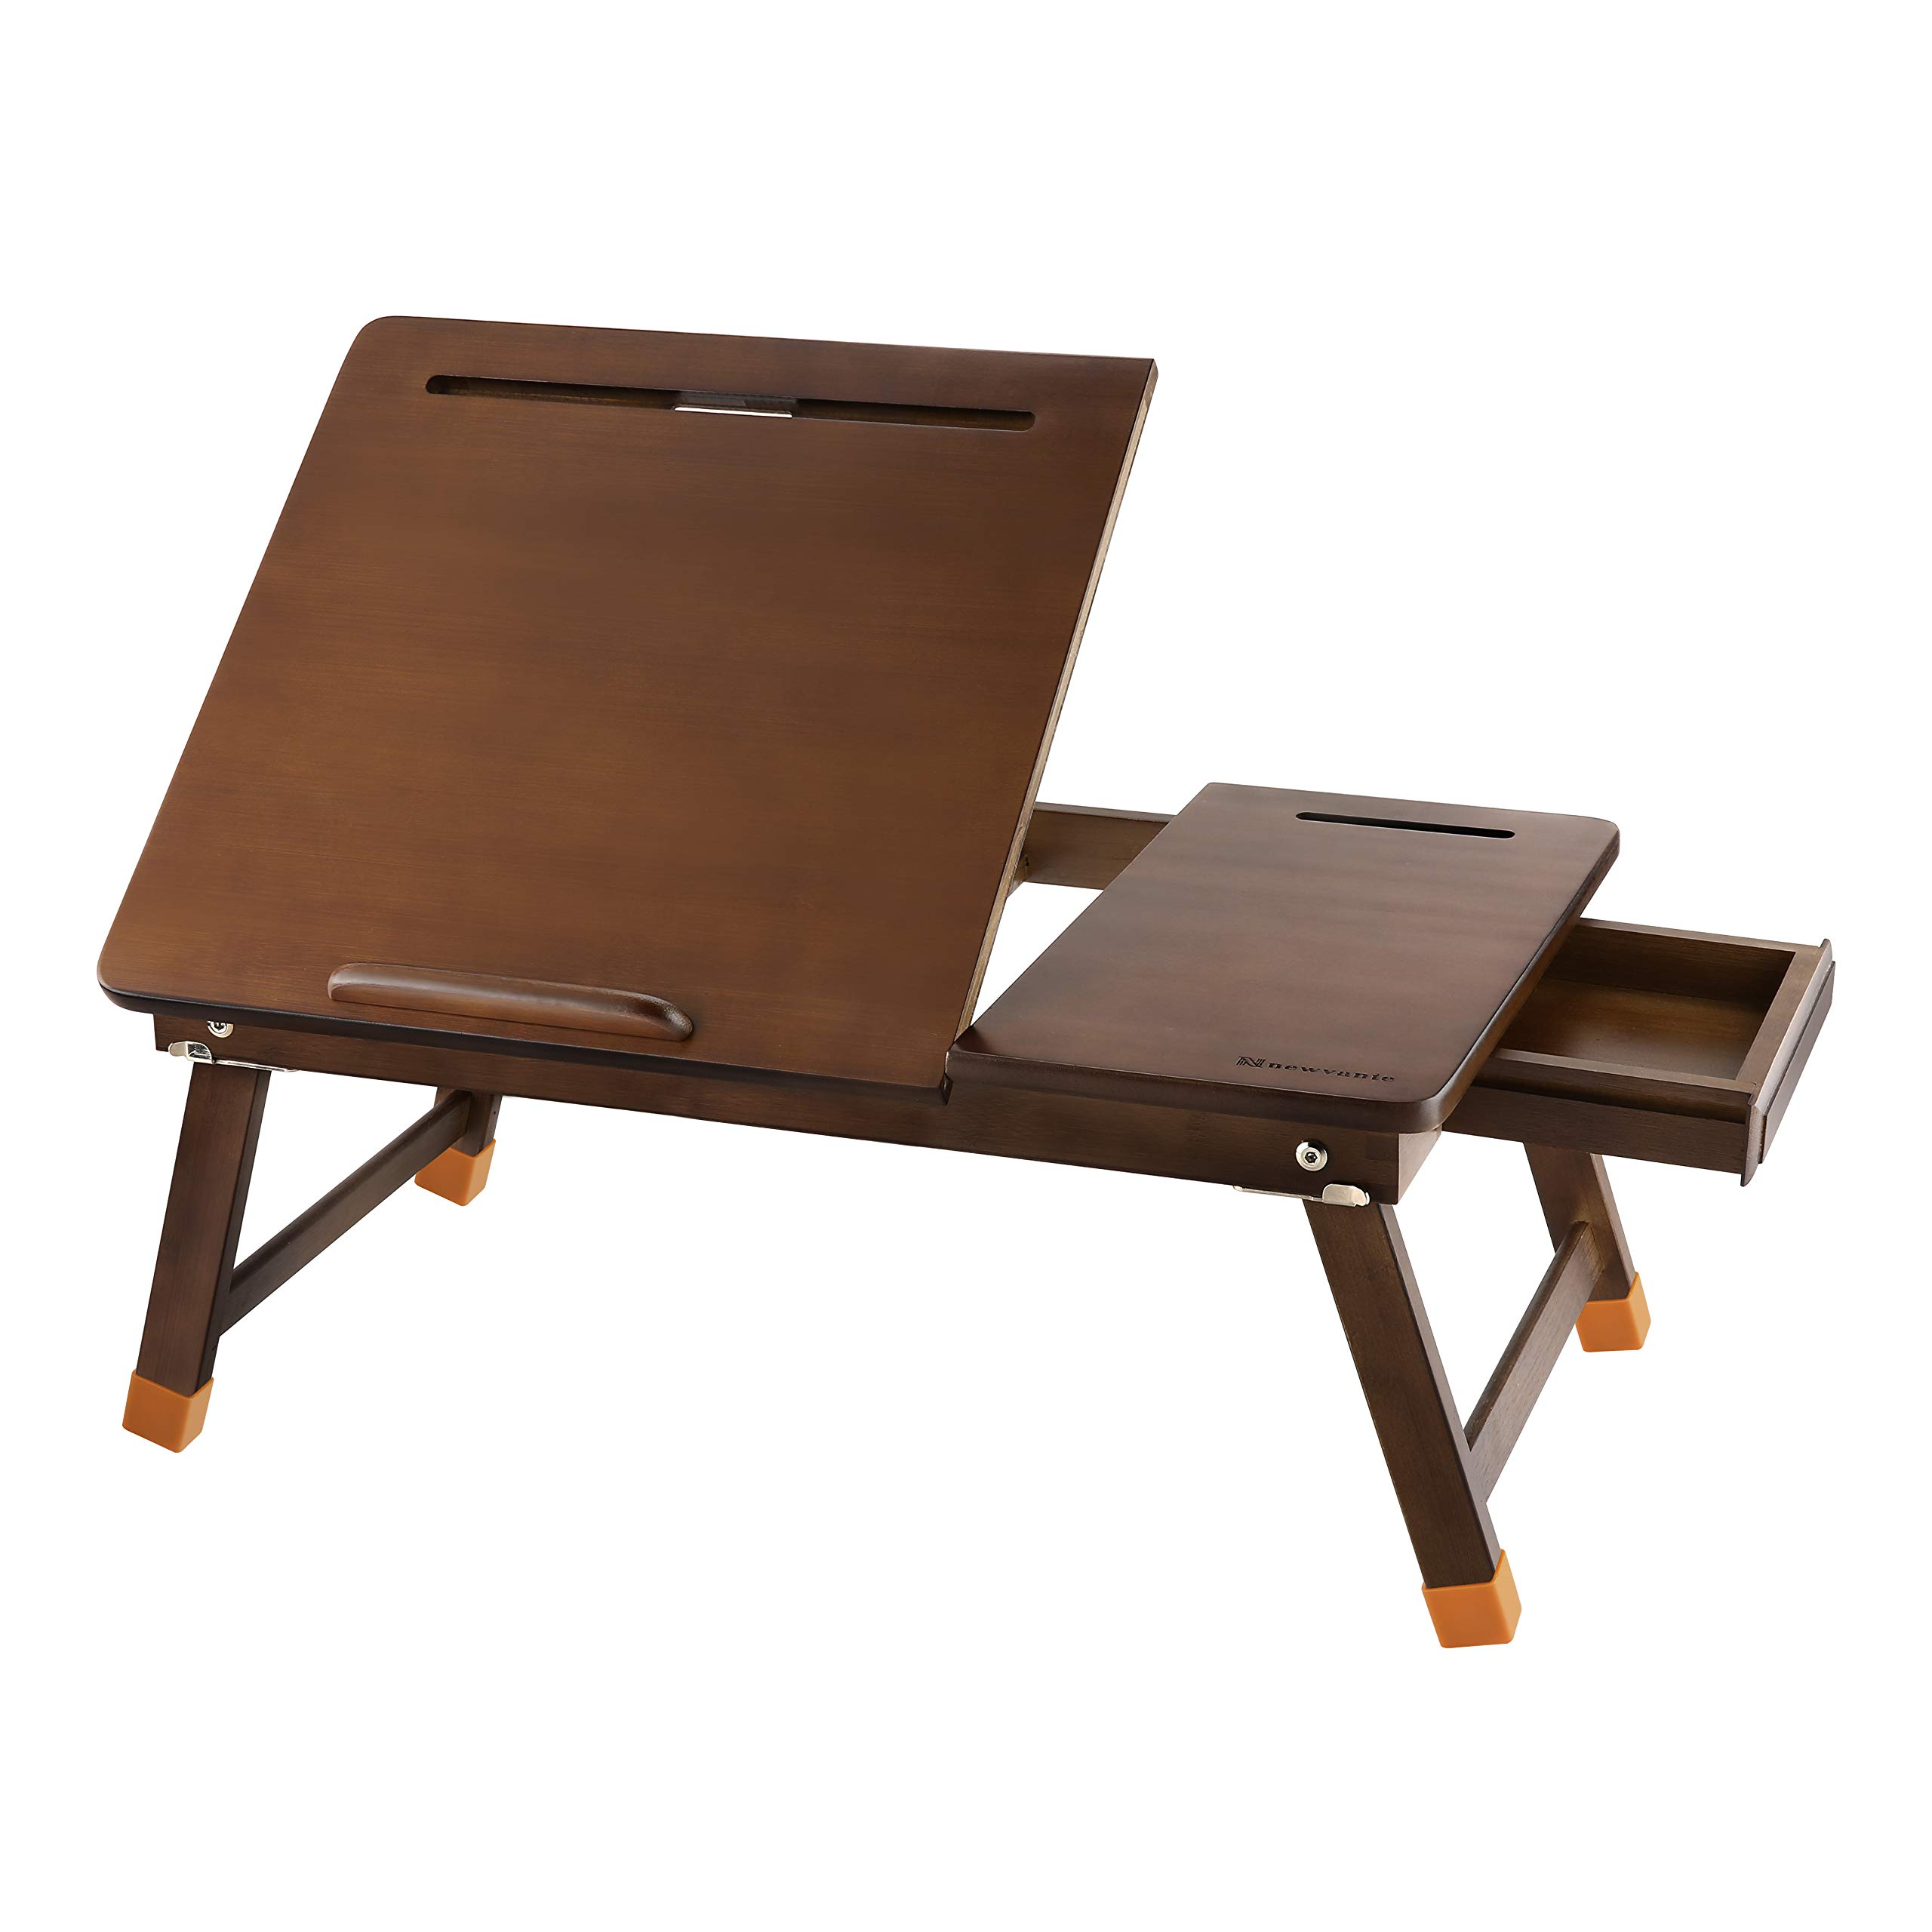 Laptop Lap Desk NNEWVANTE Bed Tray Table Adjustable 100% Bamboo Foldable Laptop Table Breakfast Serving Tray w' Tilting Top Drawer Leg Lock- Chestnut Color by NNEWVANTE (Image #1)